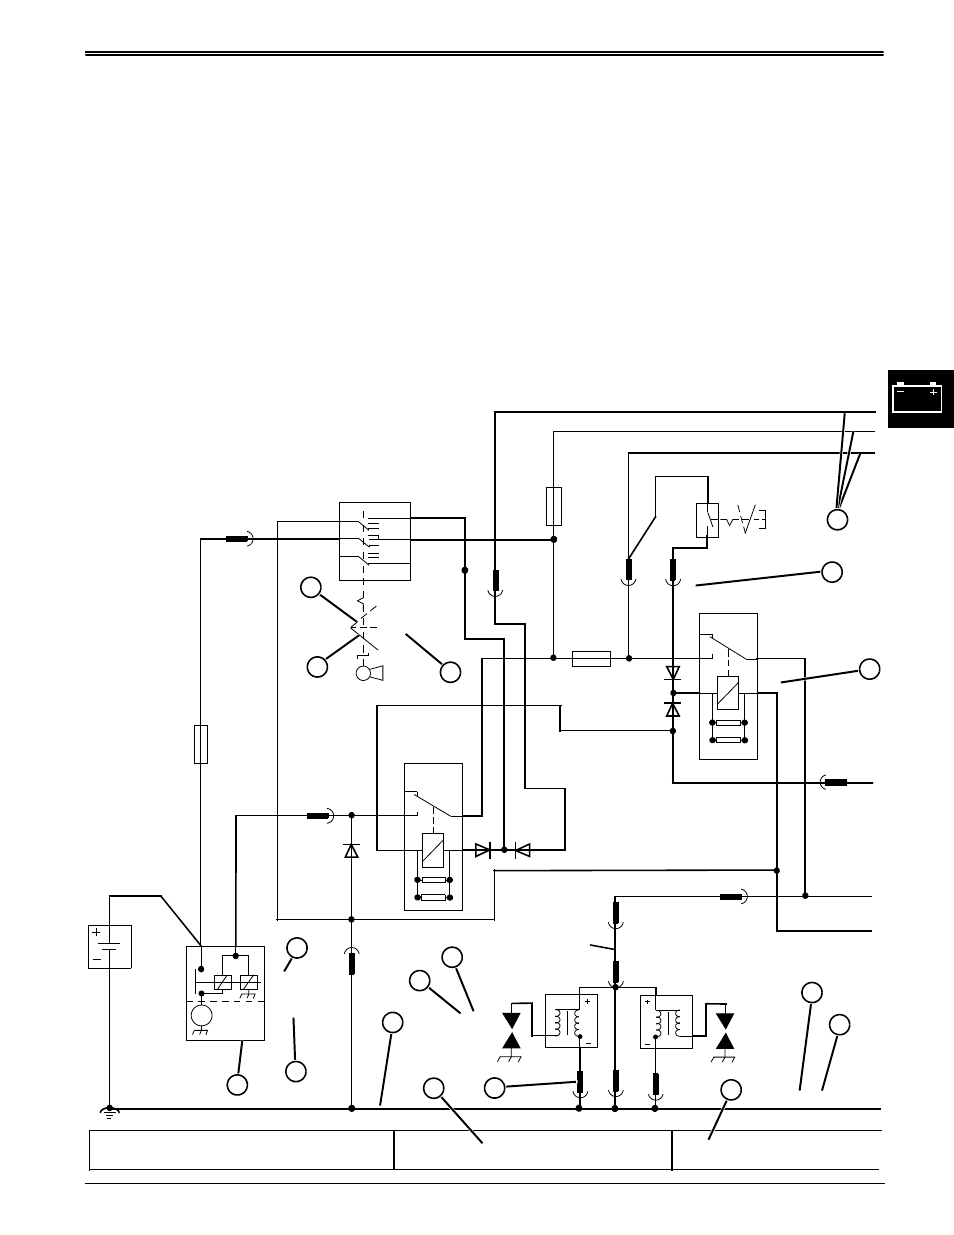 Reading Electrical Schematics Theory And Diagnostic Information Stx 38 Wiring Diagram Engine John Deere Stx38 User Manual Page 89 314